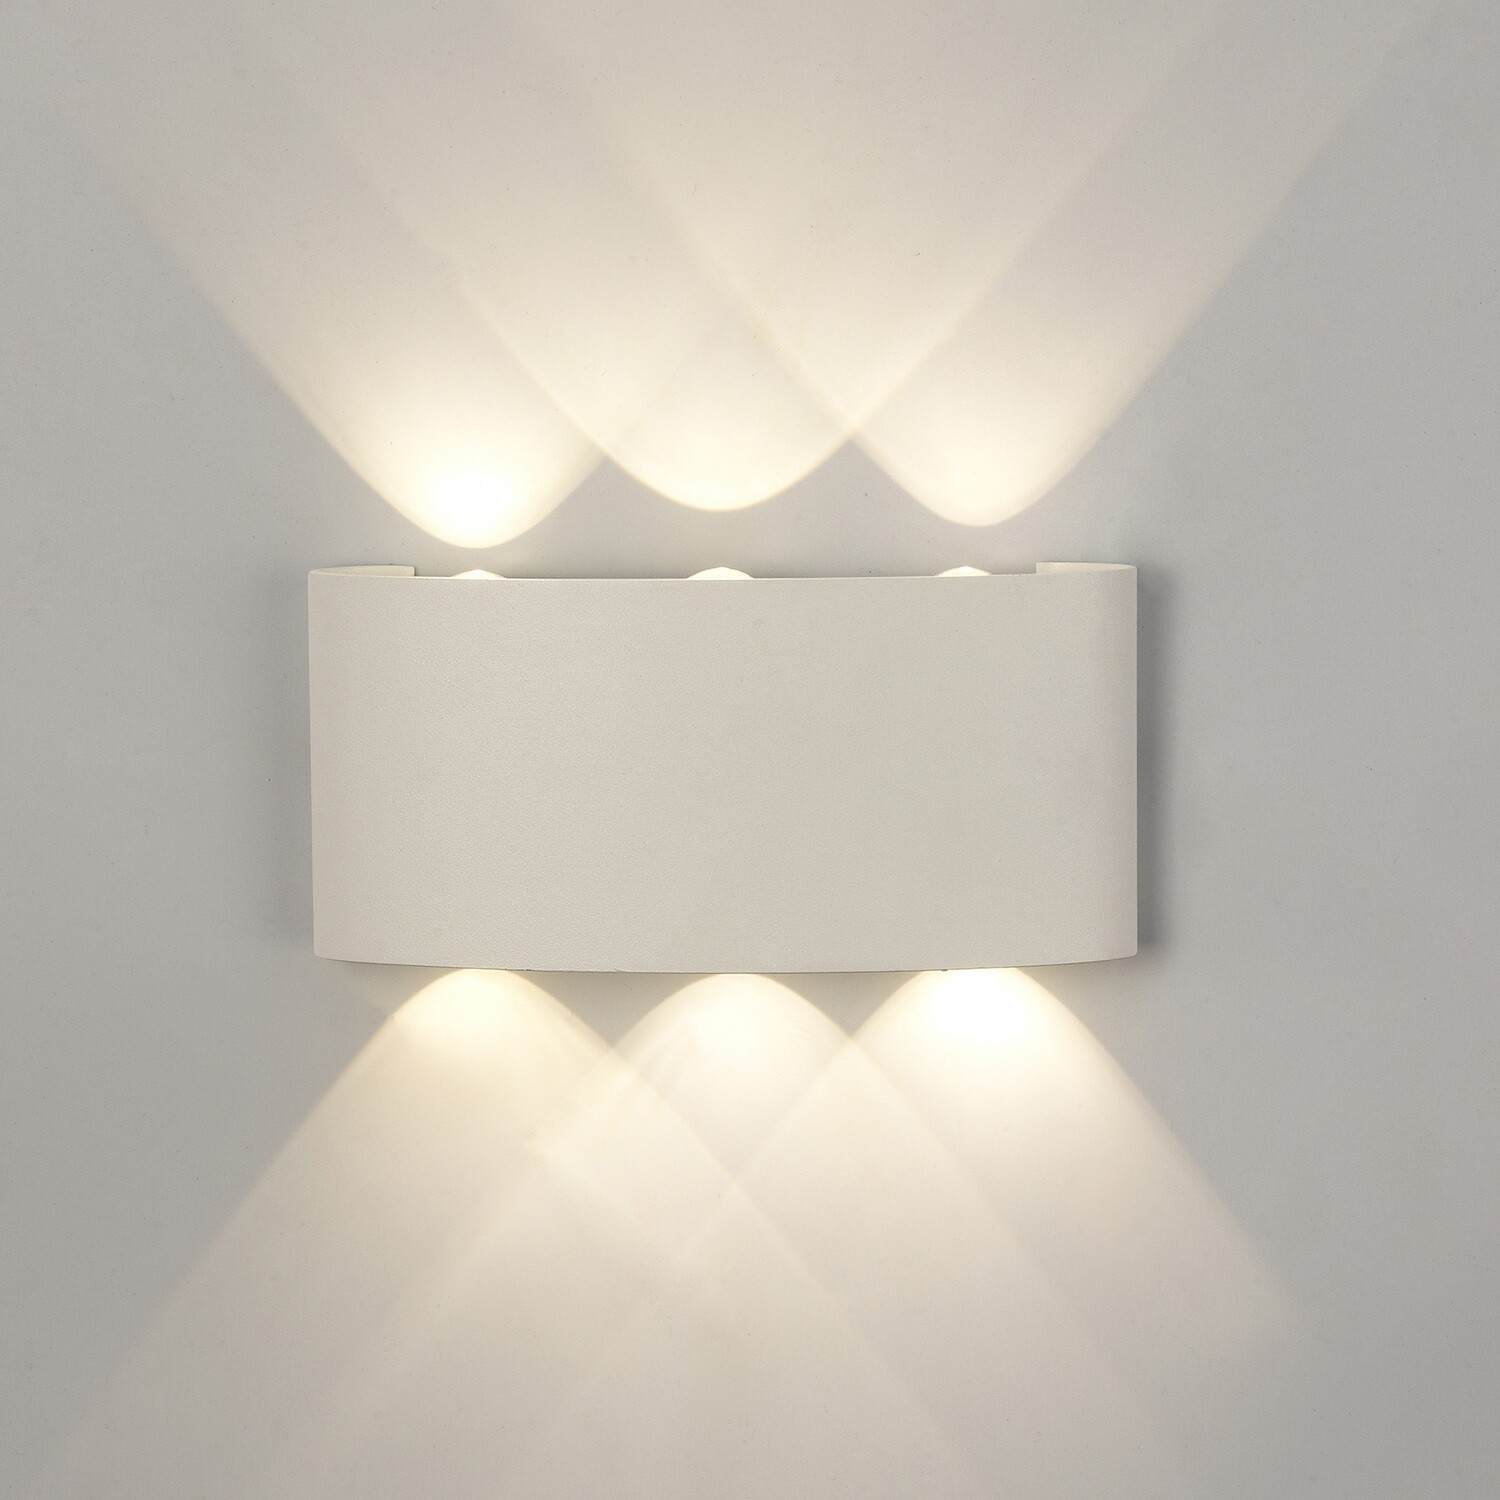 Arcs Wall Lamp, 6W LED, 3000K, 450lm, IP54, Sand White